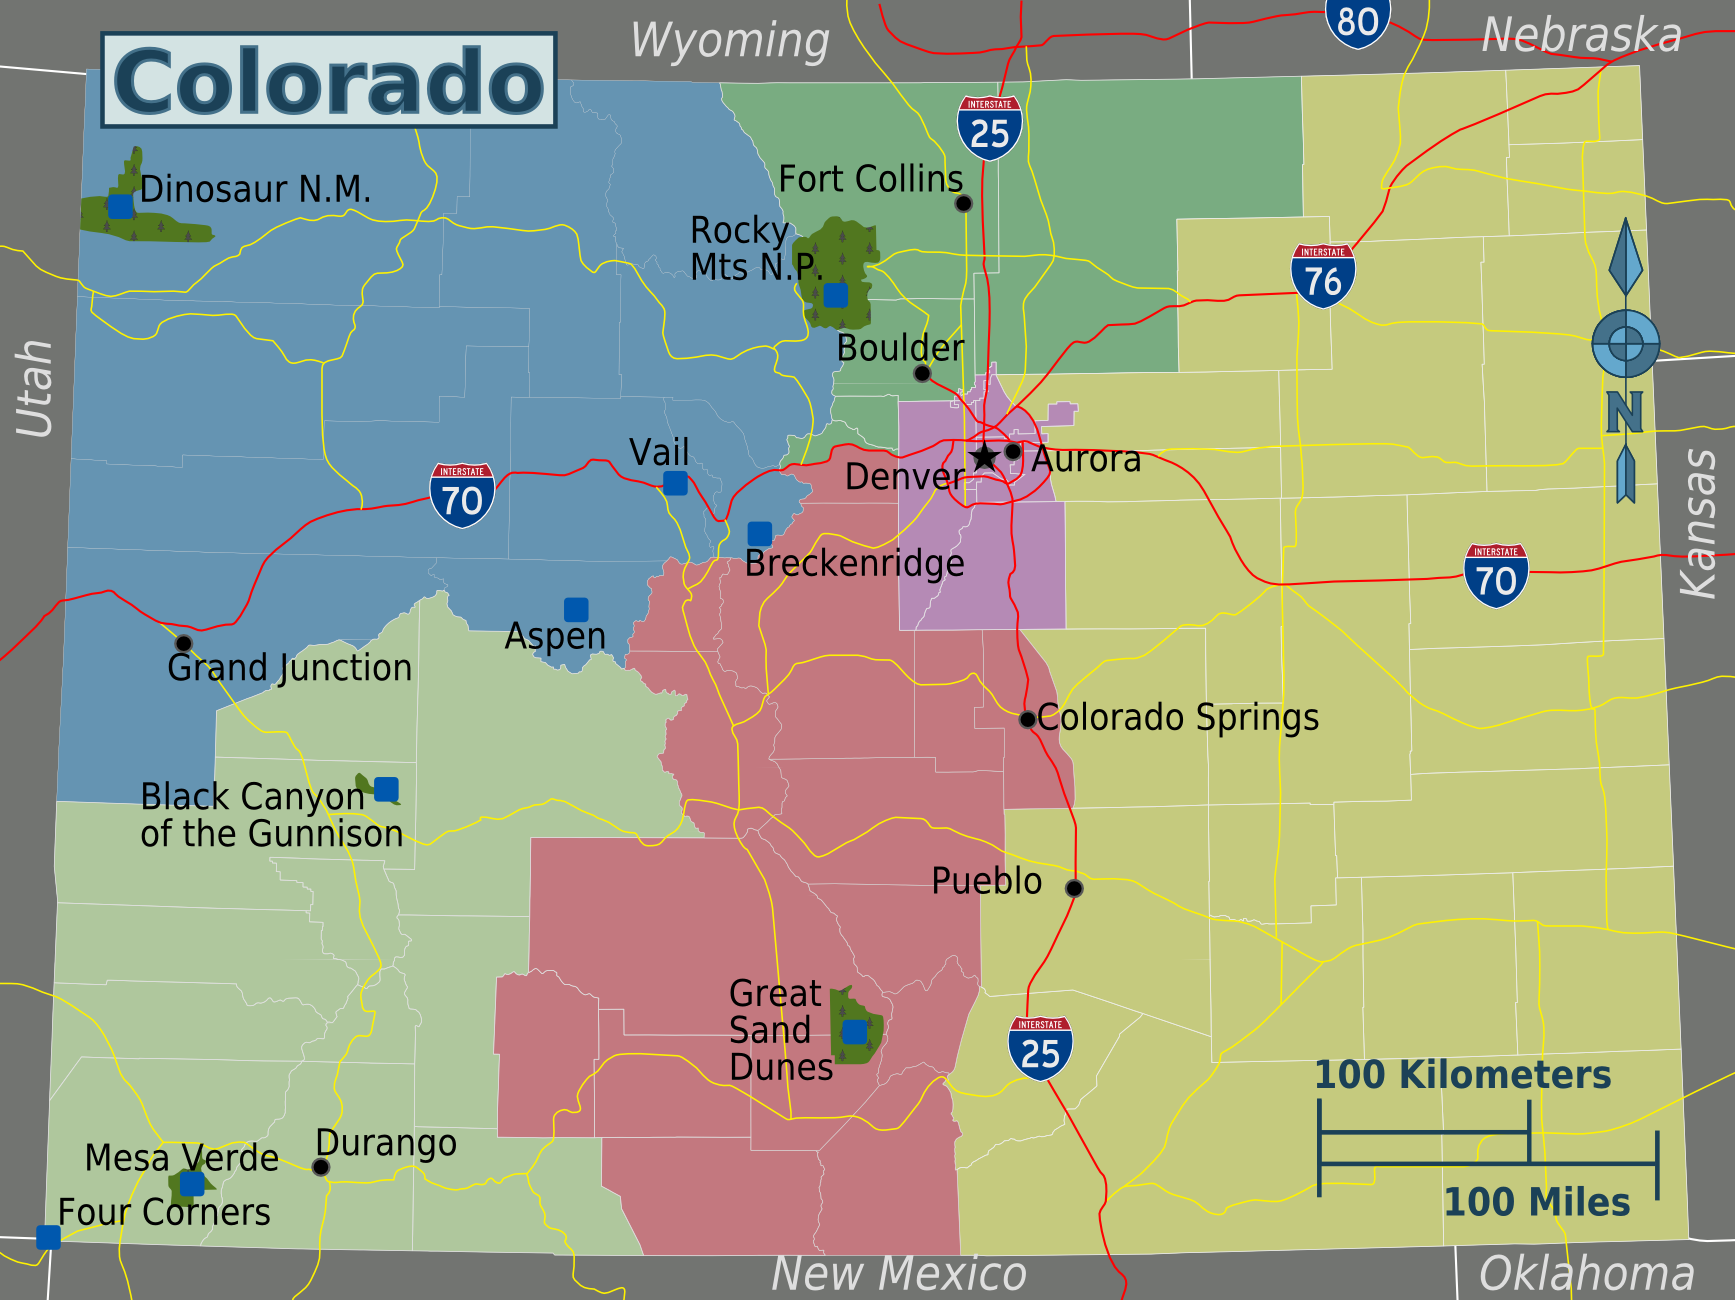 File:Colorado regions map.png - Wikimedia Commons on map of state of colorado, map of colorado colleges and universities, map of colorado points of interest, map of colorado public hunting, map of colorado fish hatcheries, map of rhode island parks, map of colorado water, map of colorado geography, map of colorado national wildlife refuges, map colorado vacation, map of colorado state lands, map of colorado cities, map of colorado county boundaries, map of colorado scenic drives, map of colorado state fair, map of dayton parks, map of colorado royal gorge bridge, map of colorado historical markers, map of memphis parks, map of colorado hotels,